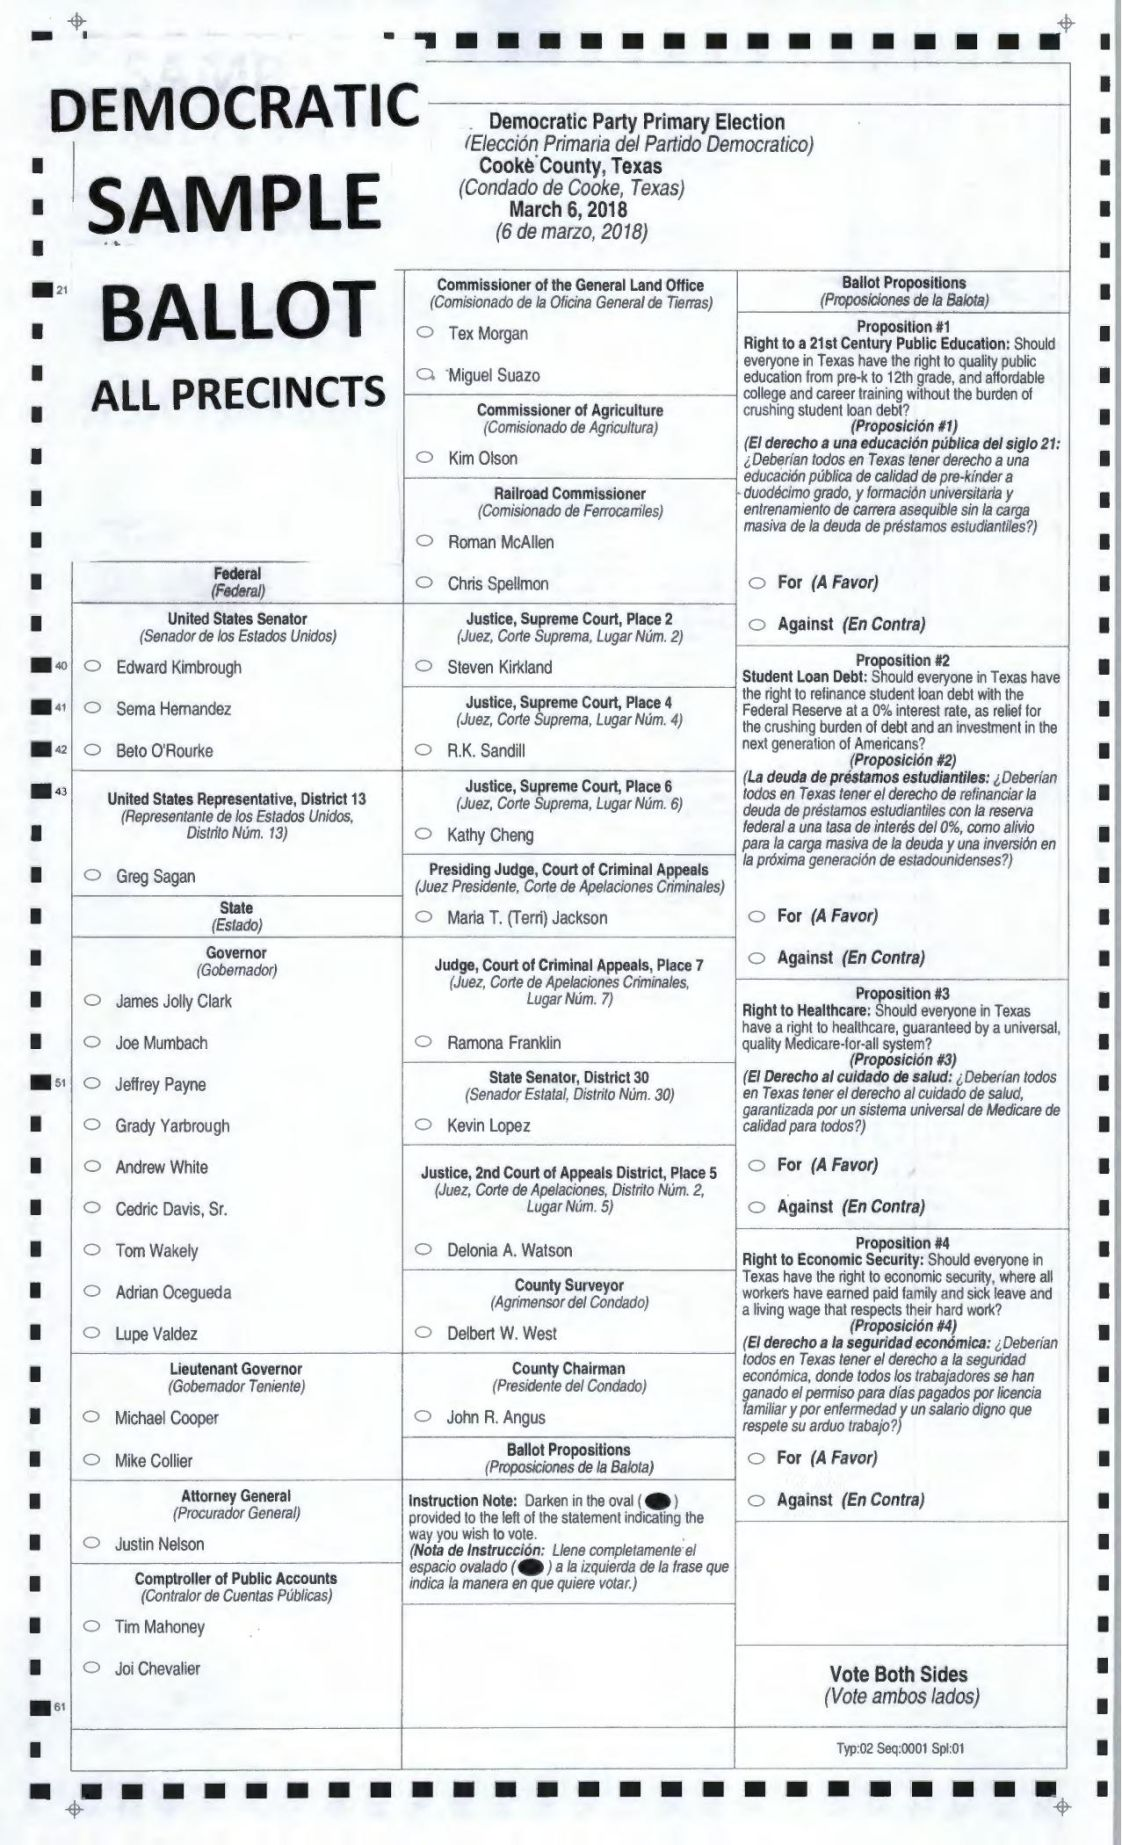 second image for 6 Printable Voting Ballot Template Yyatt with Democratic Party sample ballot for 2018 primary election ...